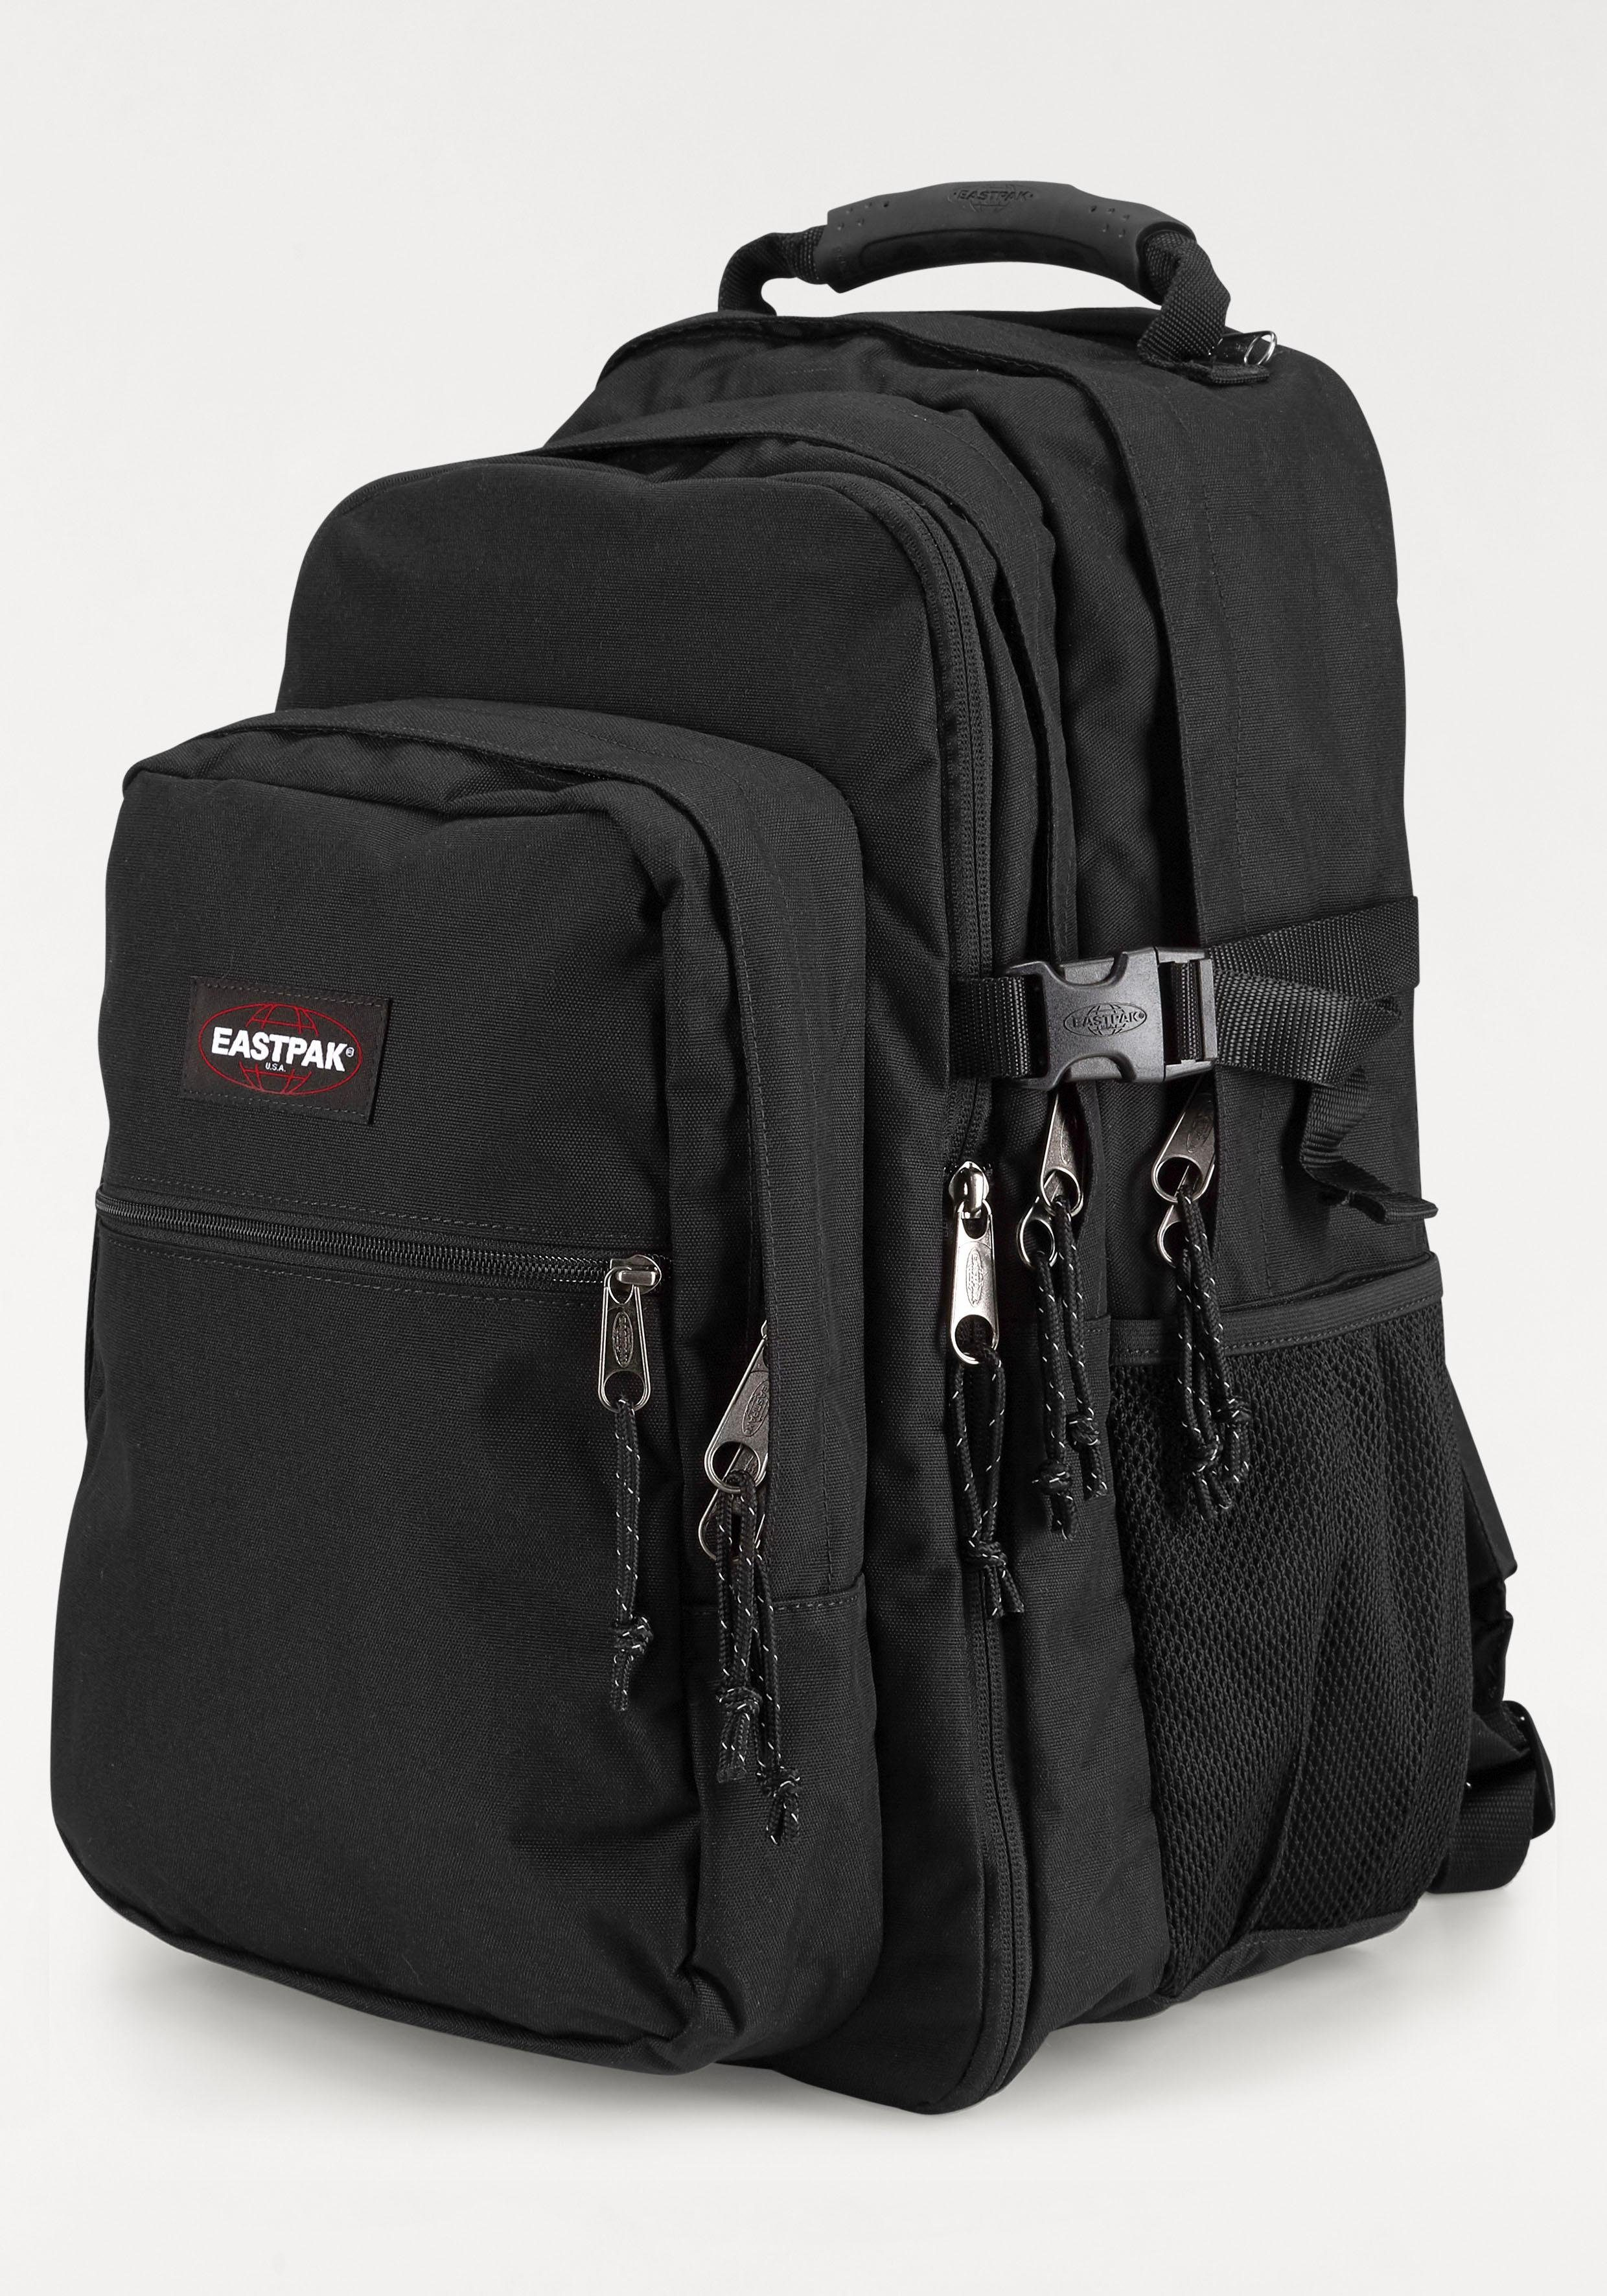 Eastpak Daypack »TUTOR«, mit Laptopfach